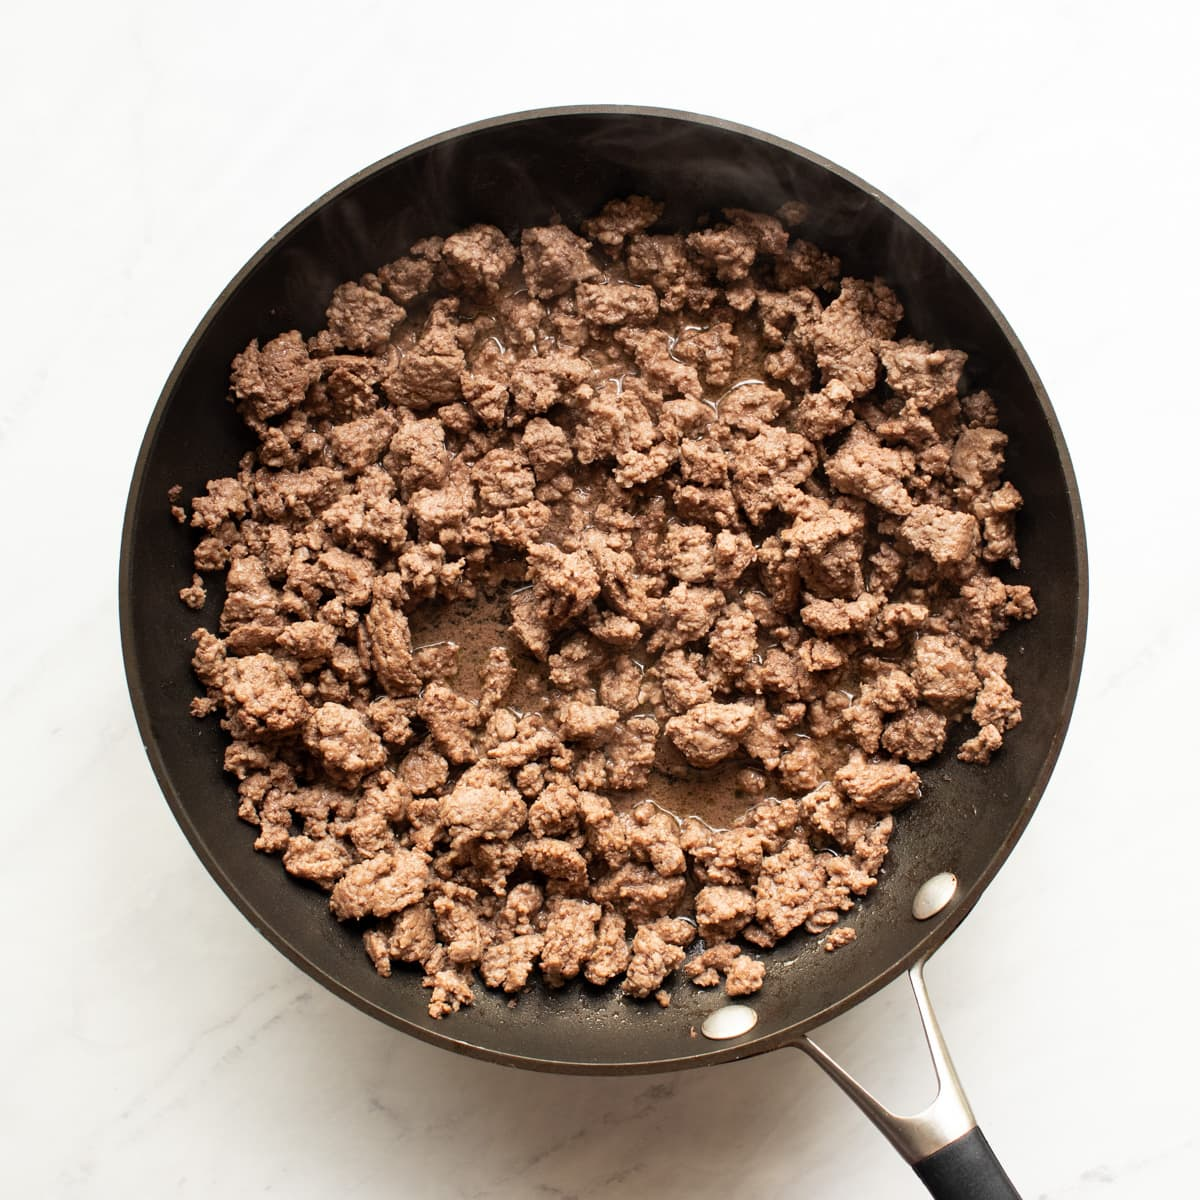 A skillet with browned ground beef.